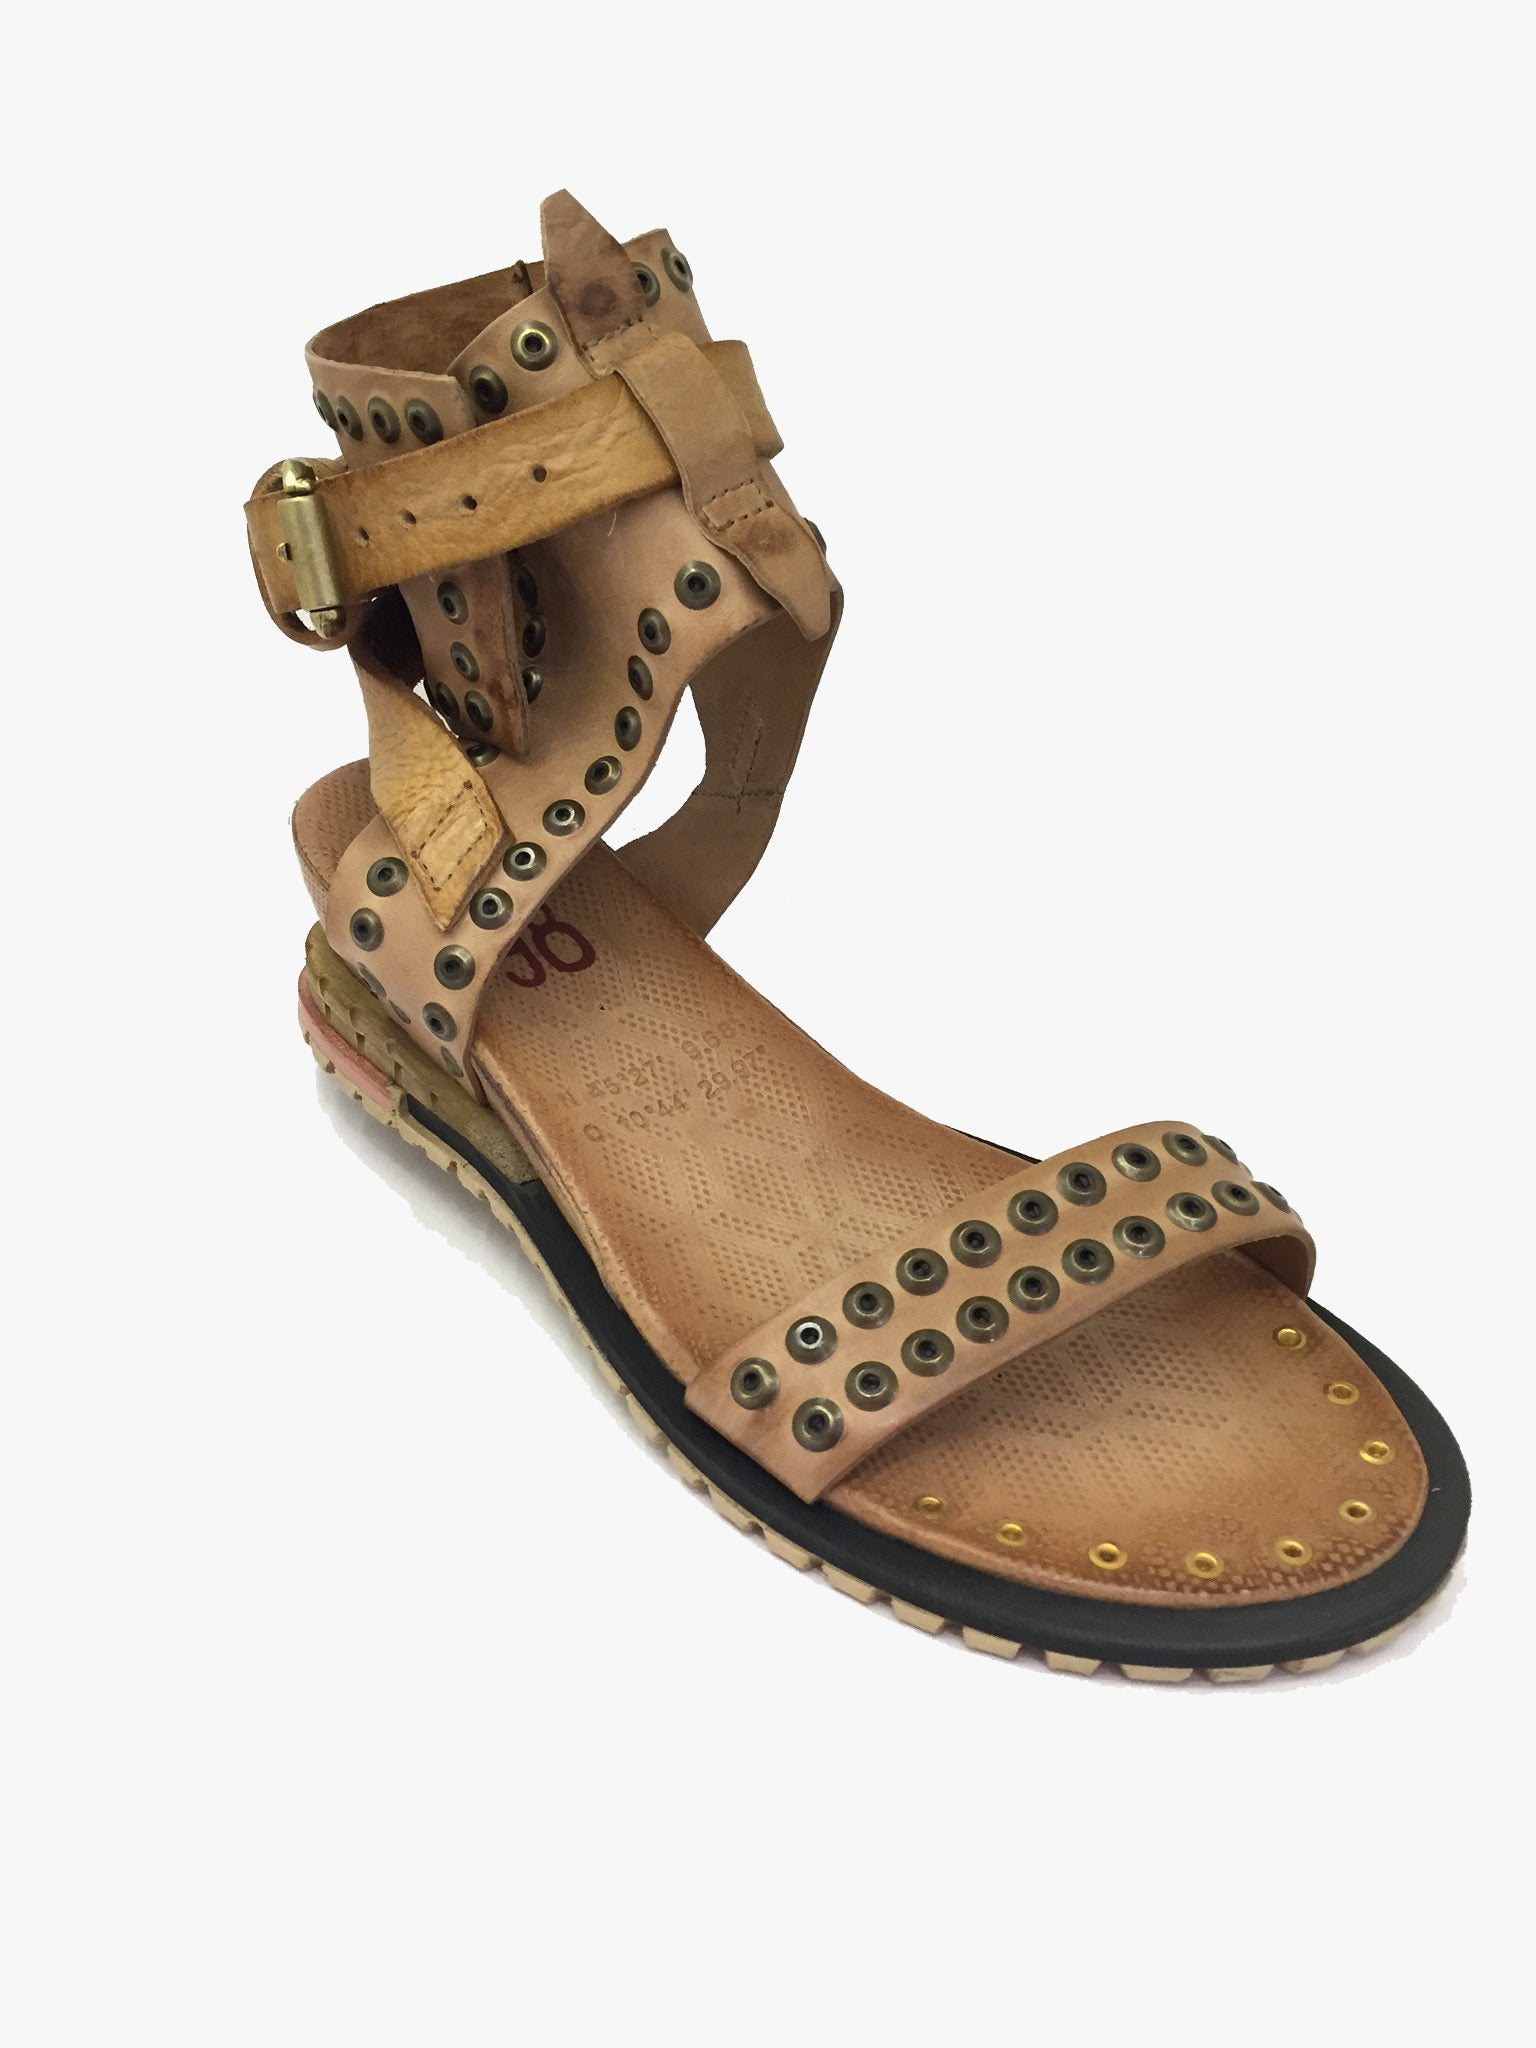 A.S.9.8 Nude leather sandal with 2 inch/5cm wedge. Double studded detailing across front strap. Thick strap with studded detailing around ankle. Light tan criss cross strap with single buckle fastening. Some gold studded detailing on toe area. Exclusive brand.